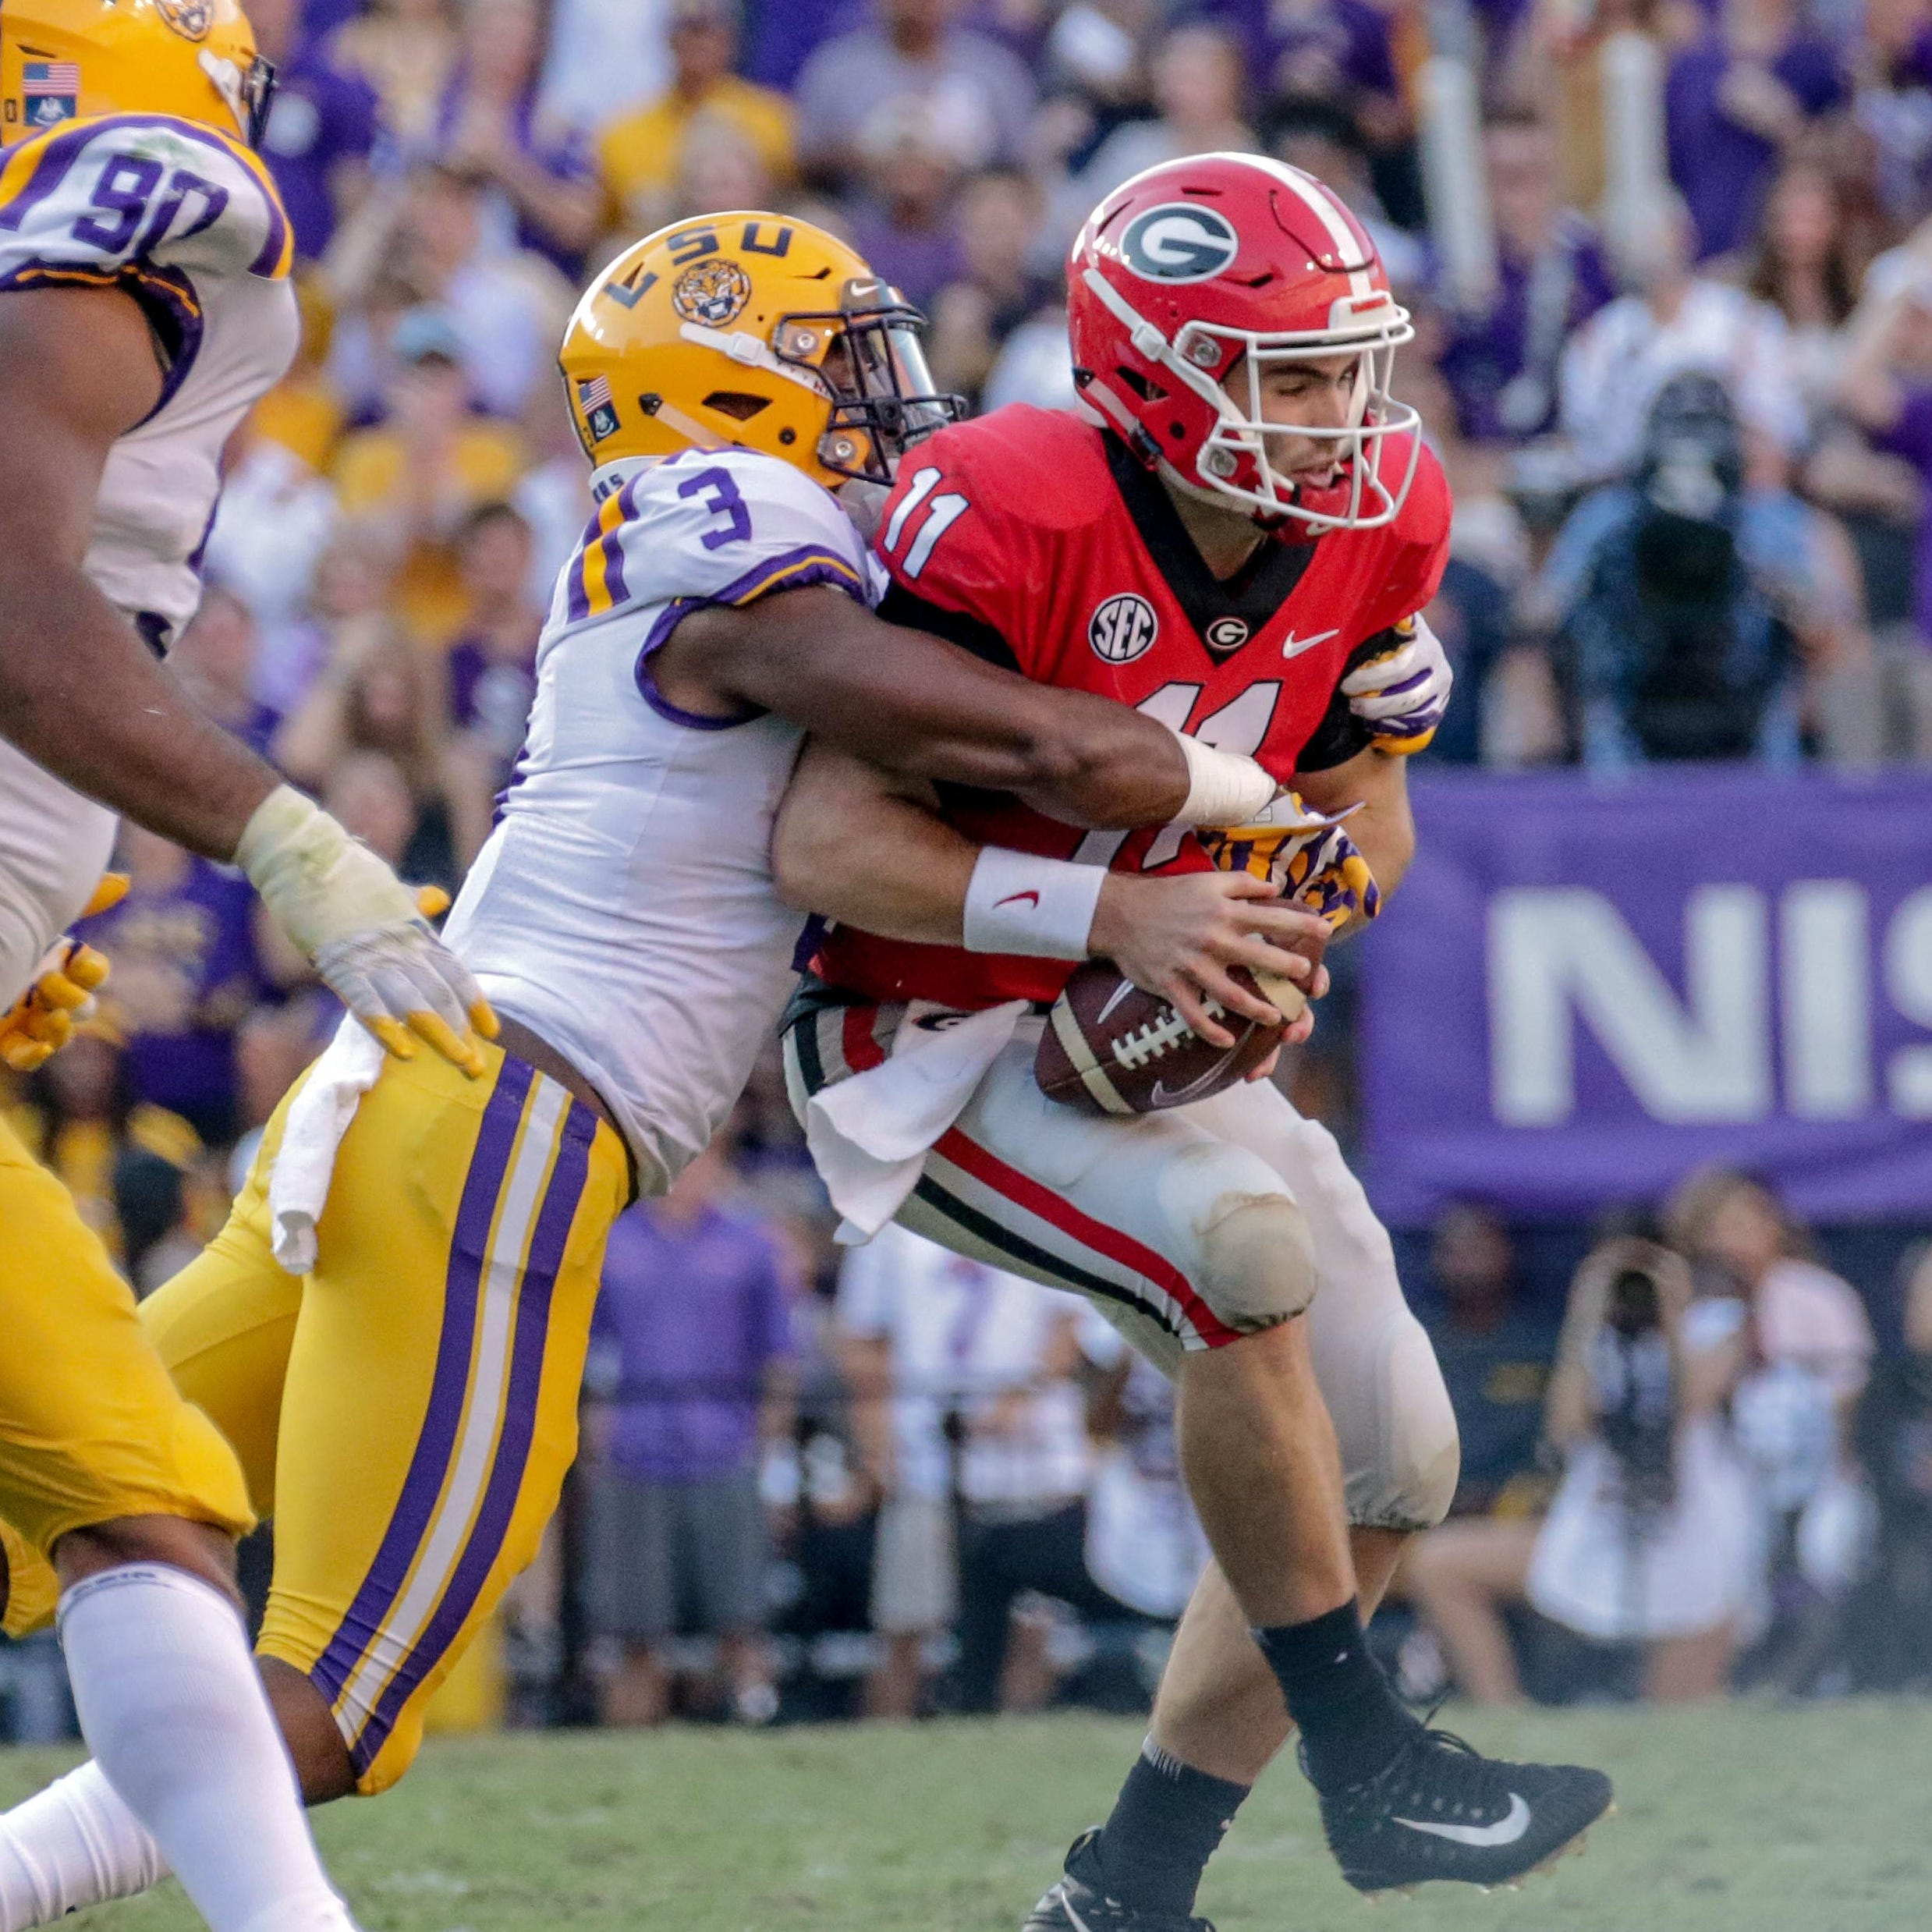 LSU defense prepares for physical challenge vs. Mississippi State